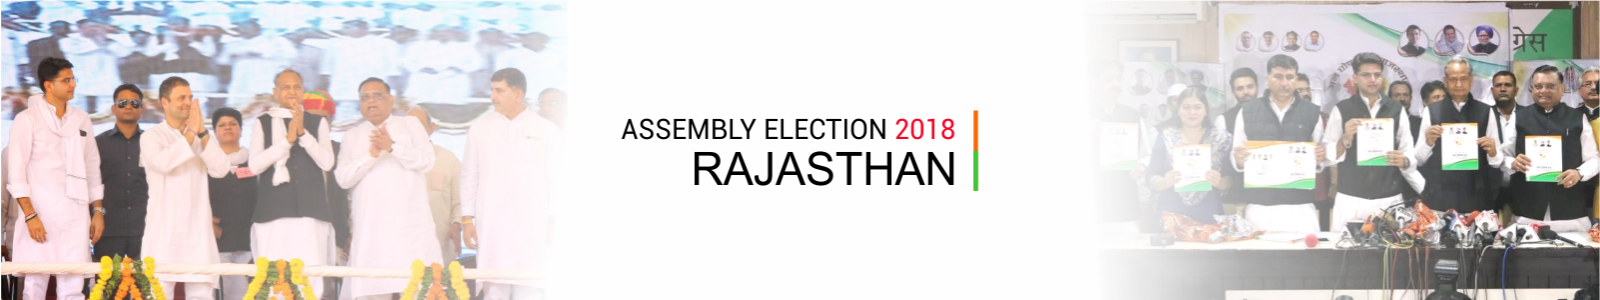 Assembly Election 2018 Rajasthan | Election Campaign Management Company India | Design Boxed Creatives